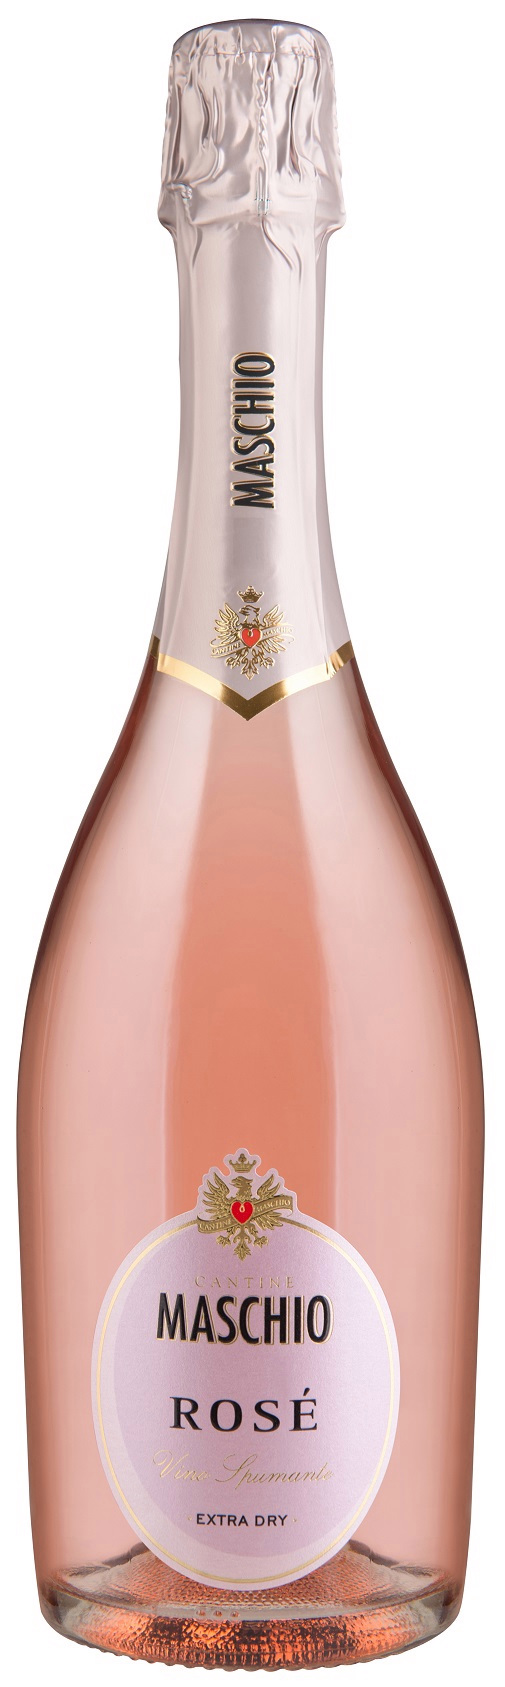 Or opt for Maschio Rose prosecco, which is down to £6.50